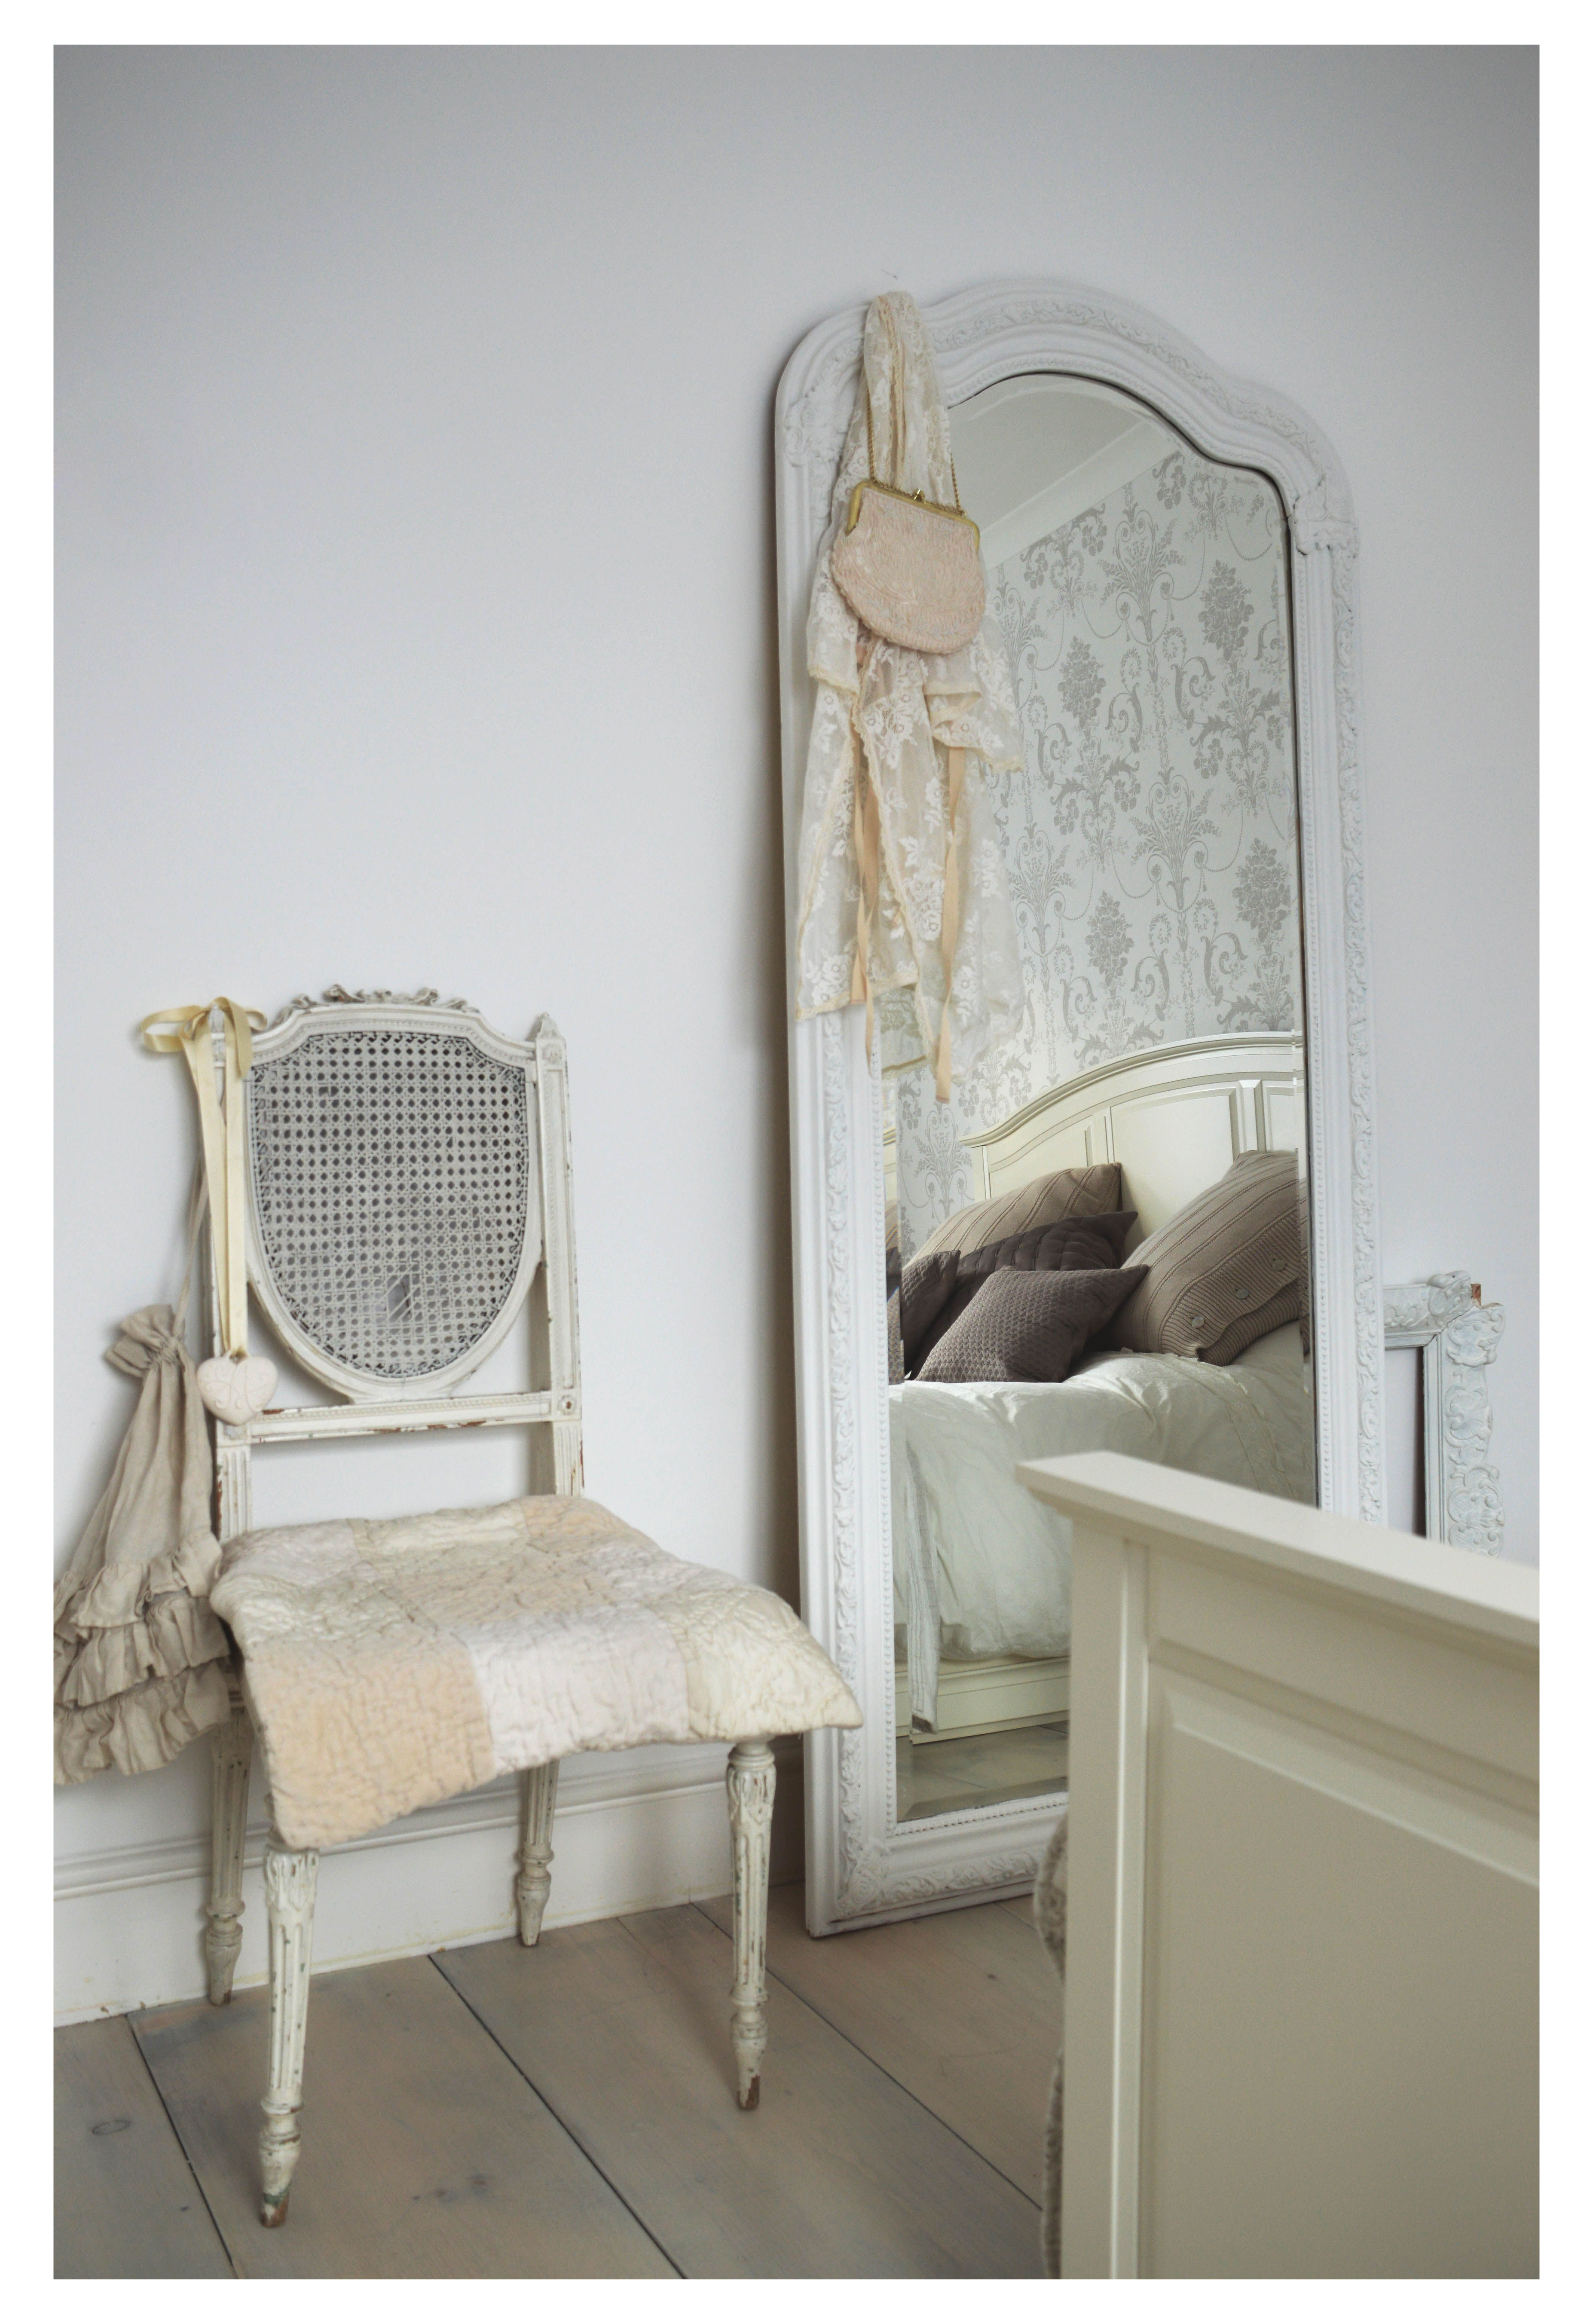 Antique french mirror, antique french chair, white washed ...